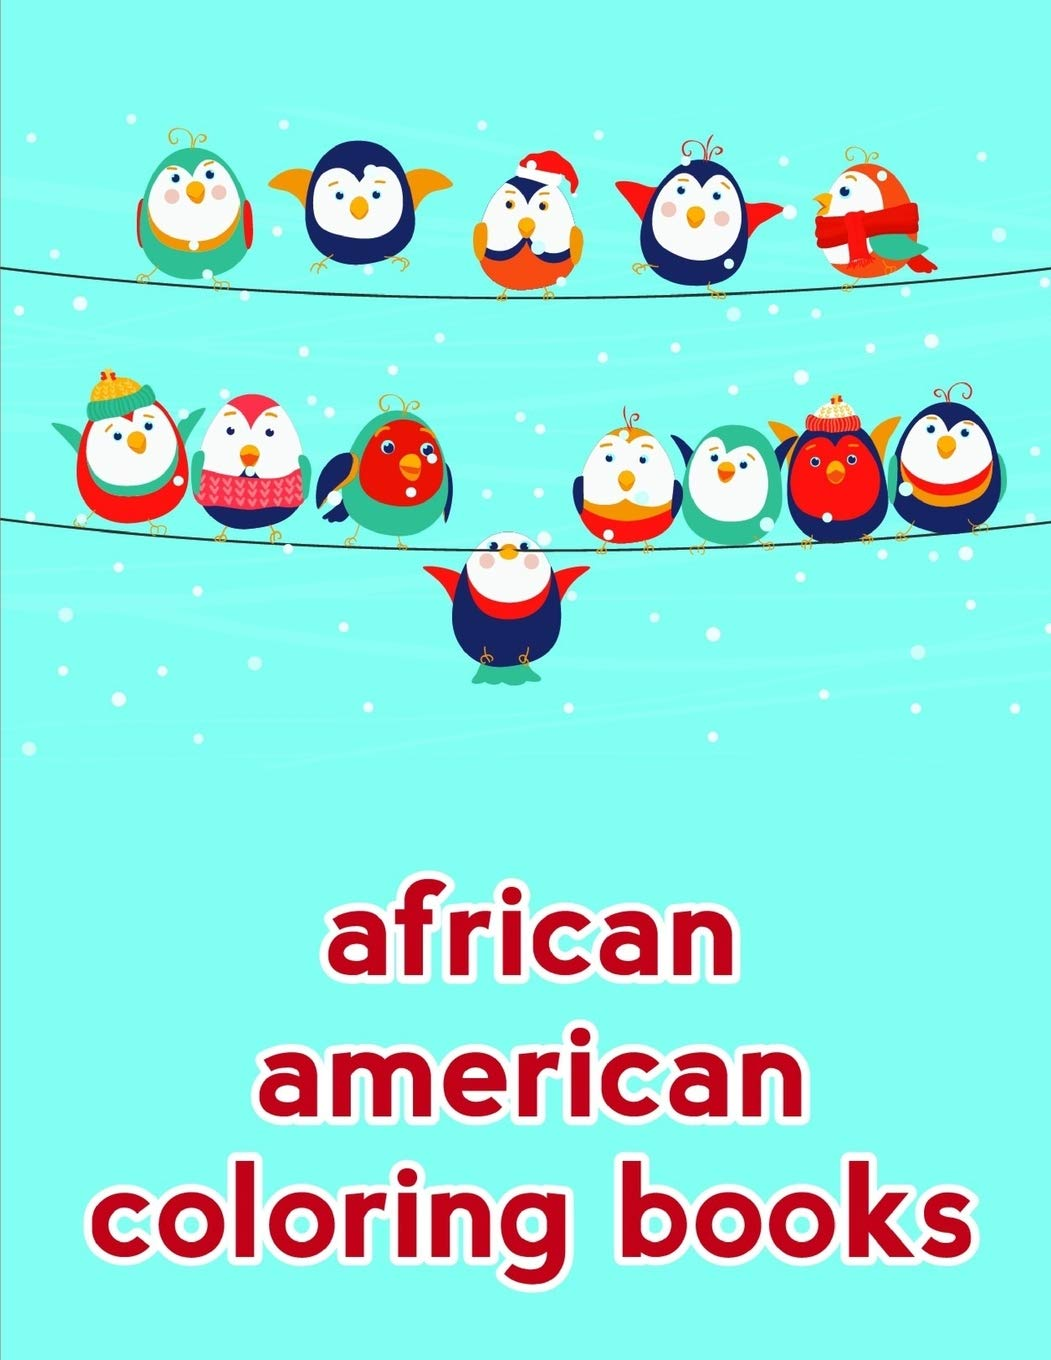 African American Coloring Books Coloring Pages With Funny Animals Adorable And Hilarious Scenes From Variety Pets Children Humor Color Advanced 9781672509916 Amazon Com Books